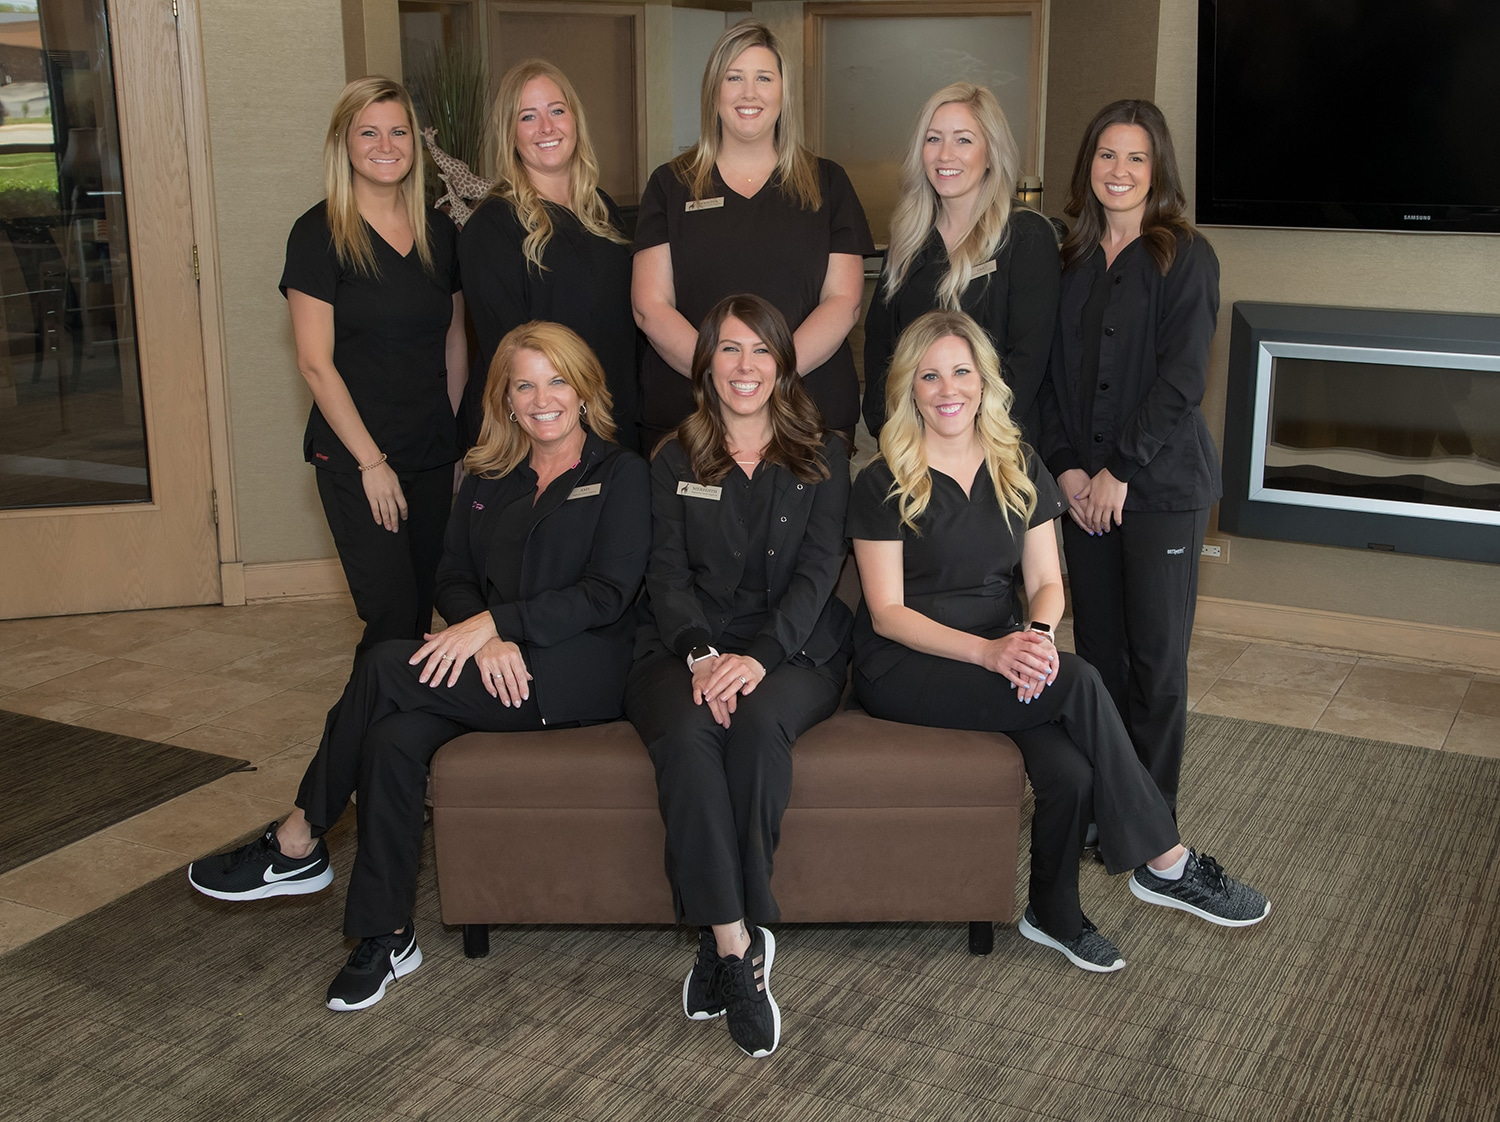 Team of Registered Hygienists at Joliet Family Dental Care